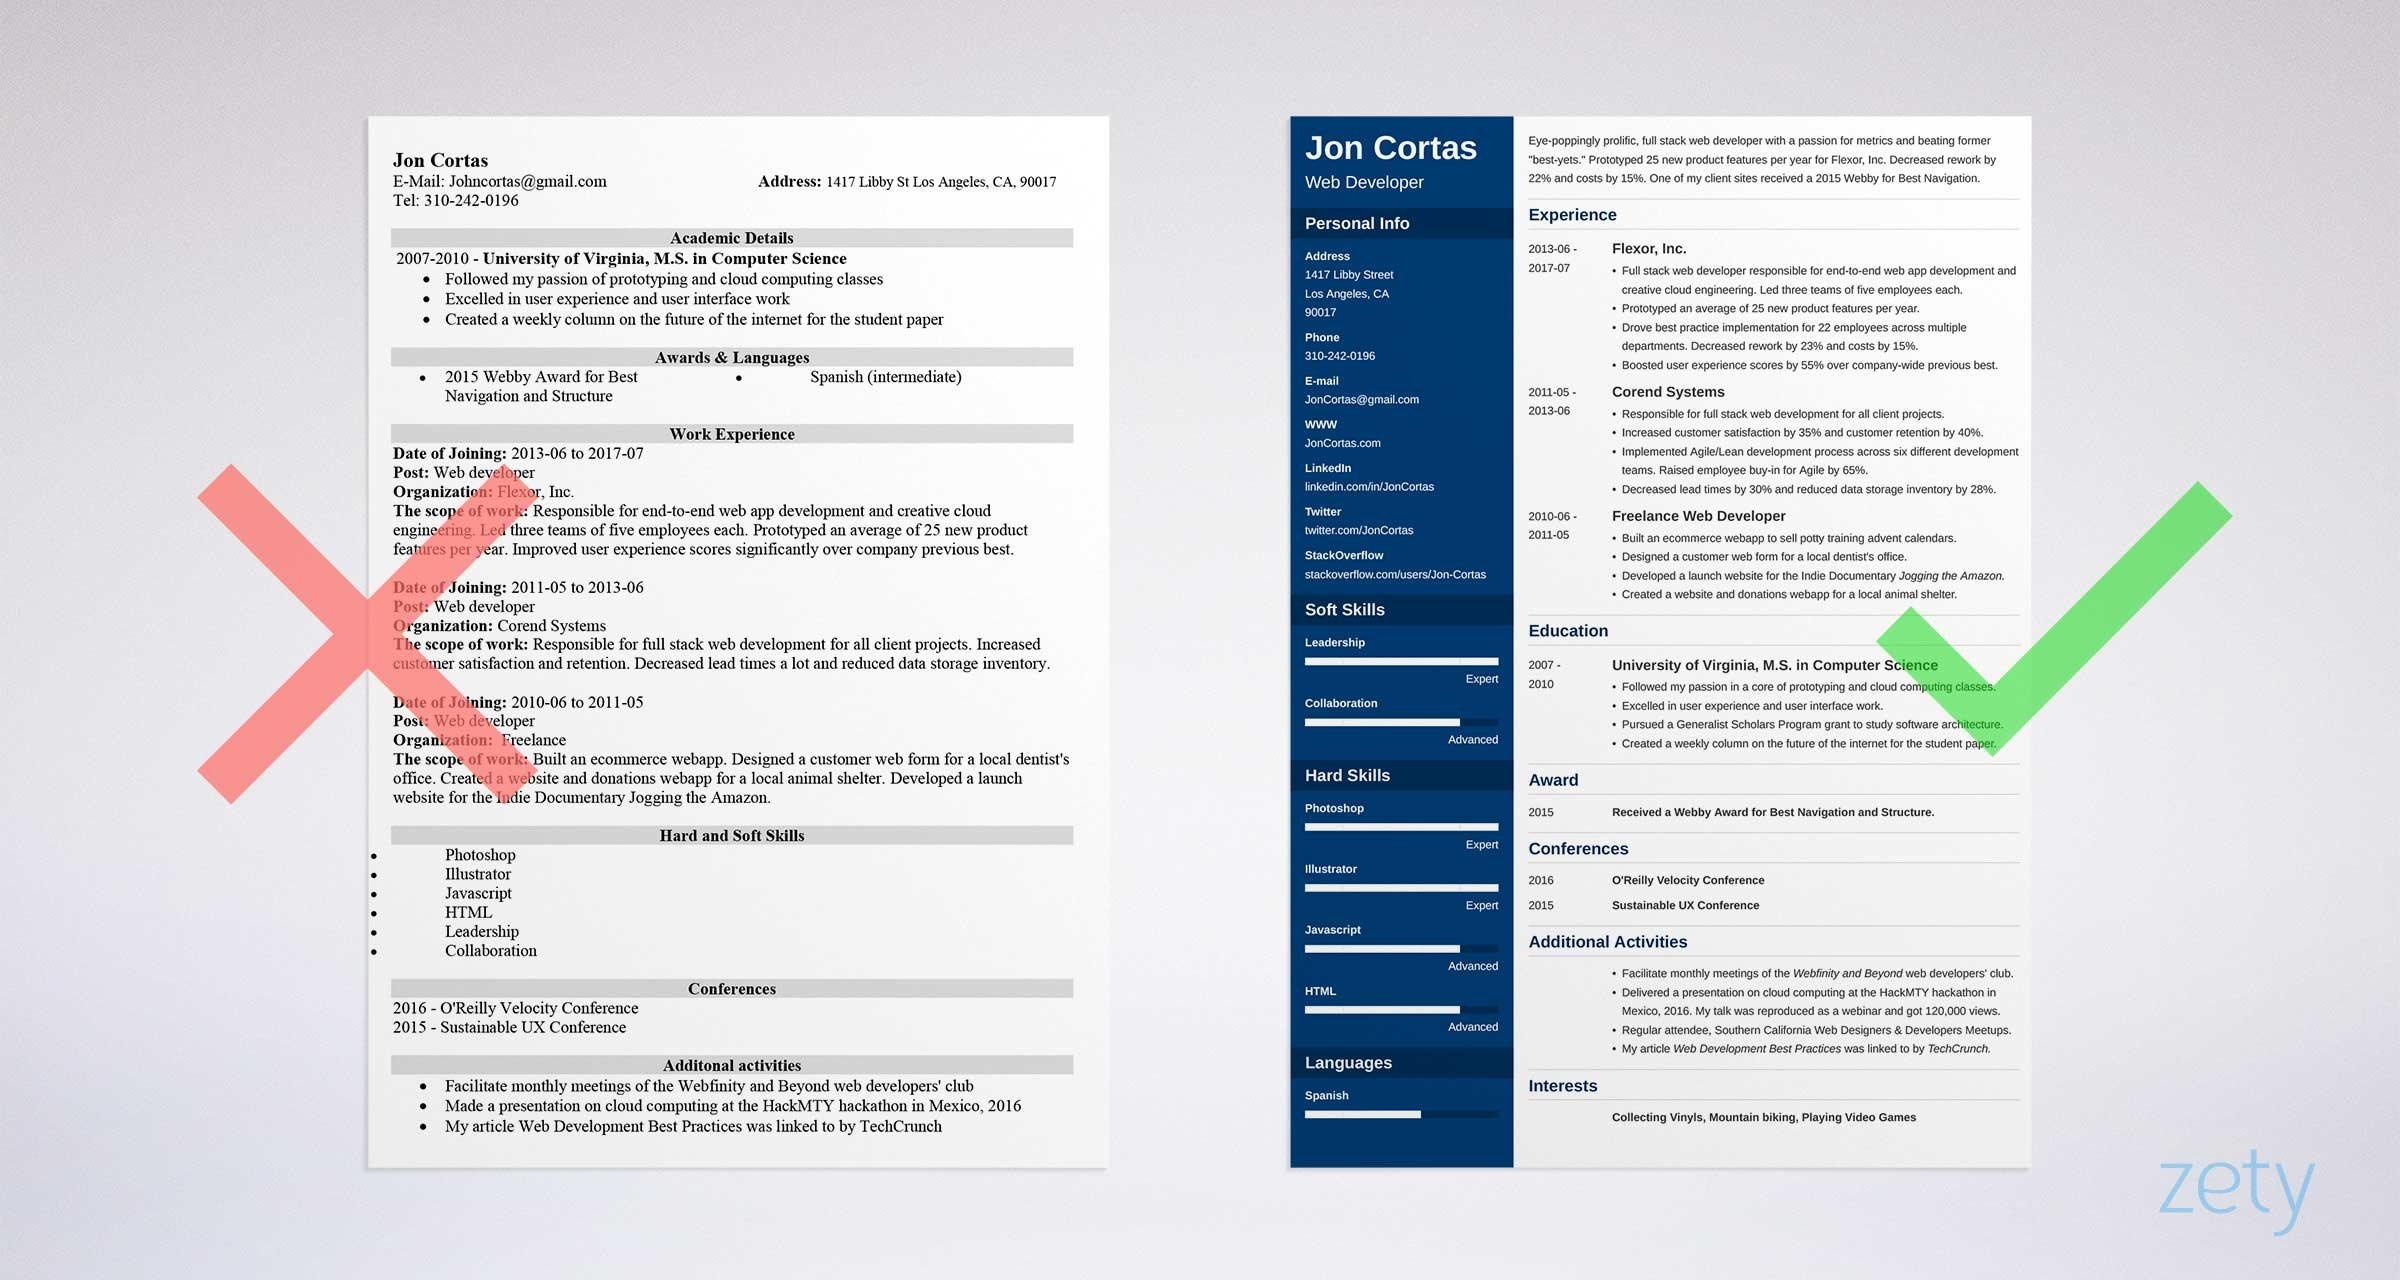 Resume templates word 15 free cv resume formats to download for How to create a cv template in word